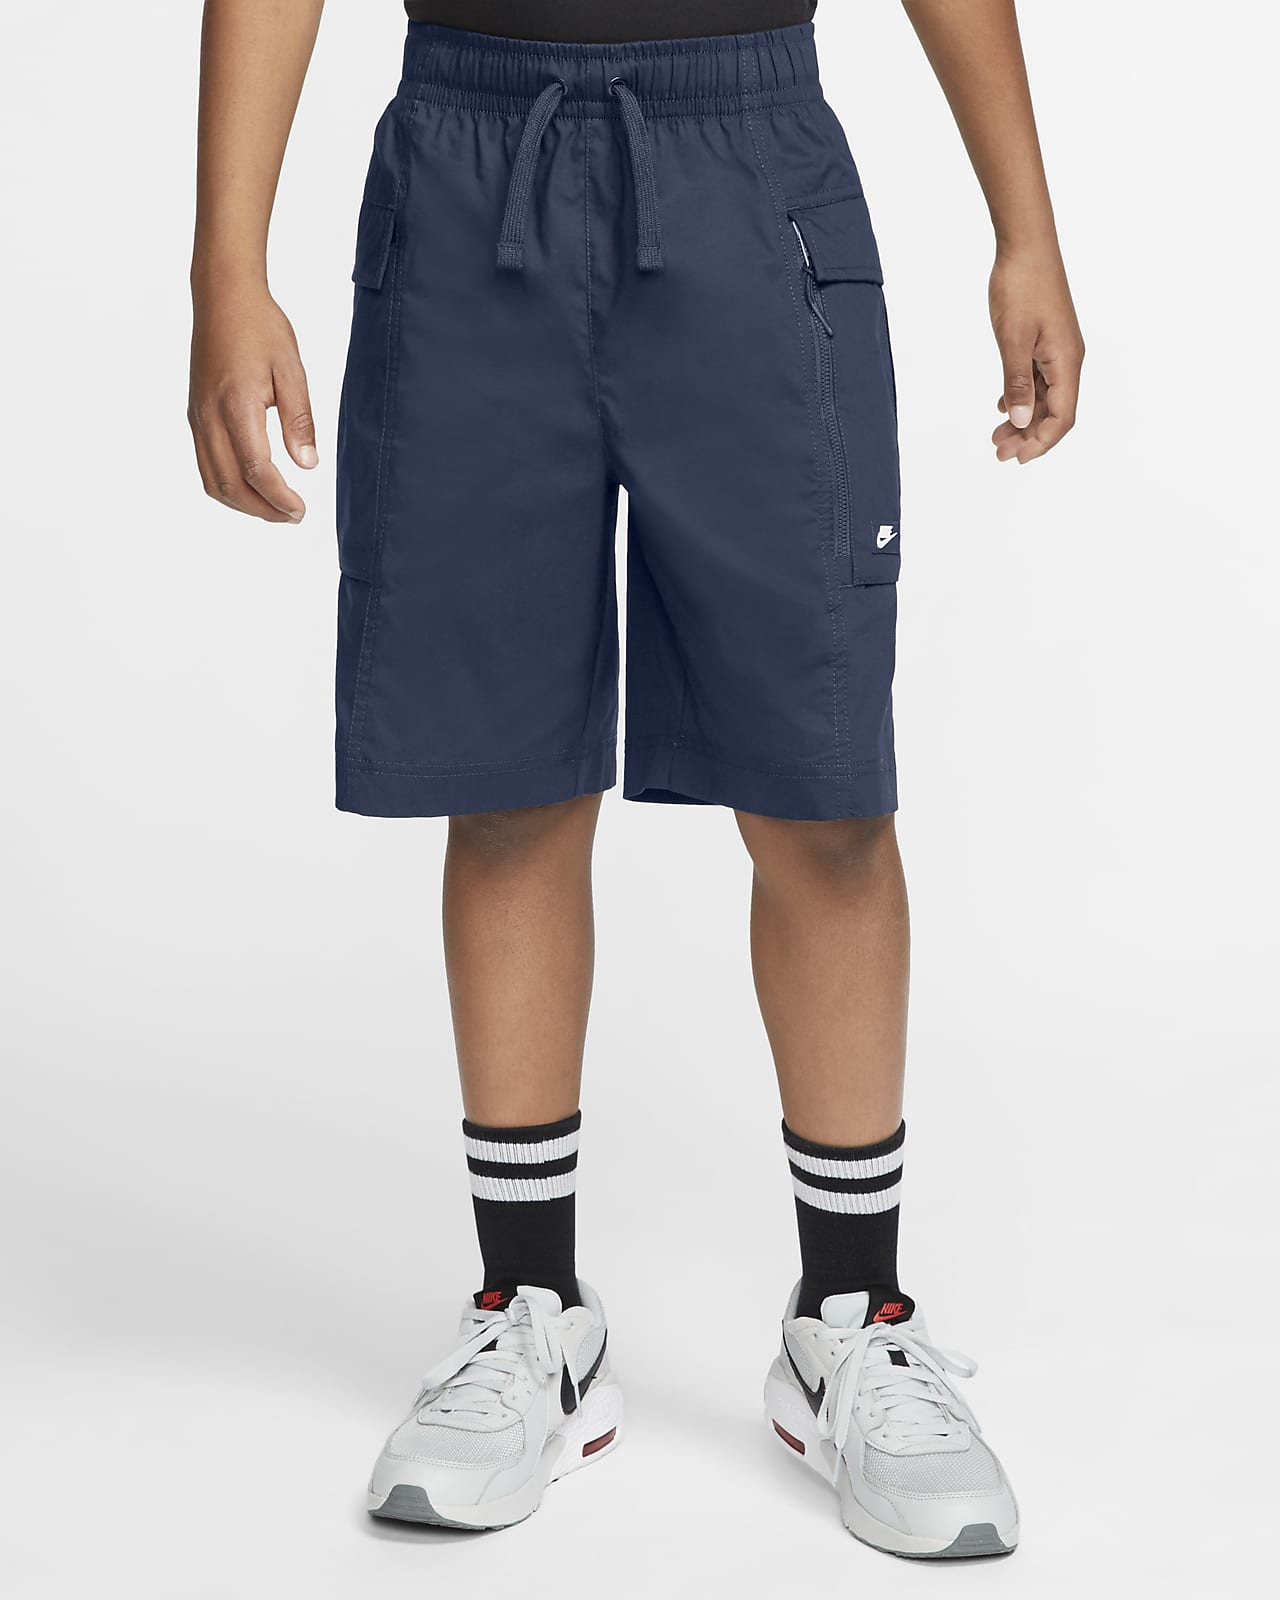 Nike Sportswear Older Kids' (Boys') Woven Cargo Shorts